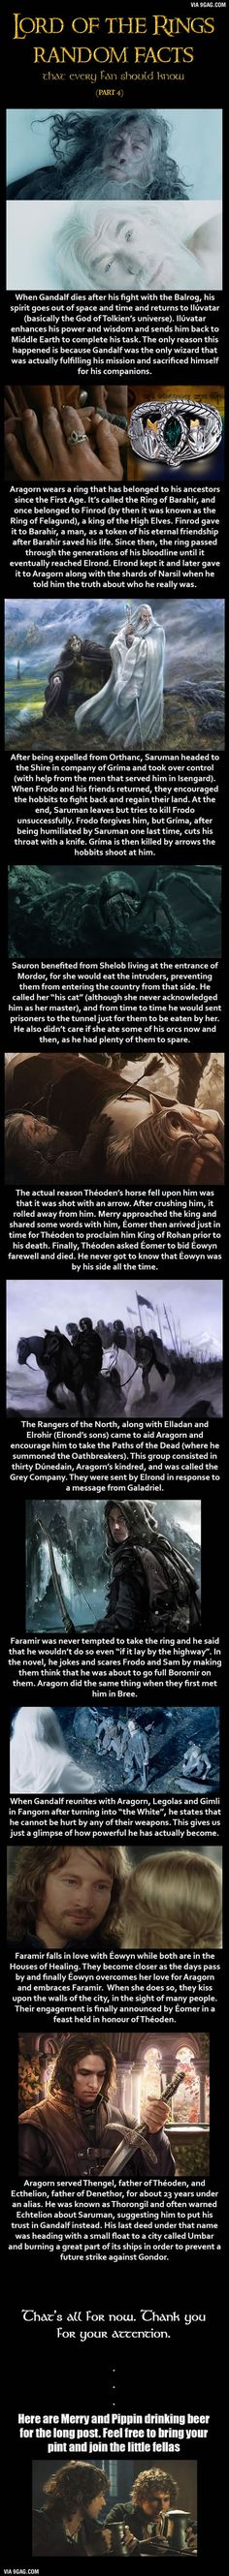 Random Lord of the Rings facts.